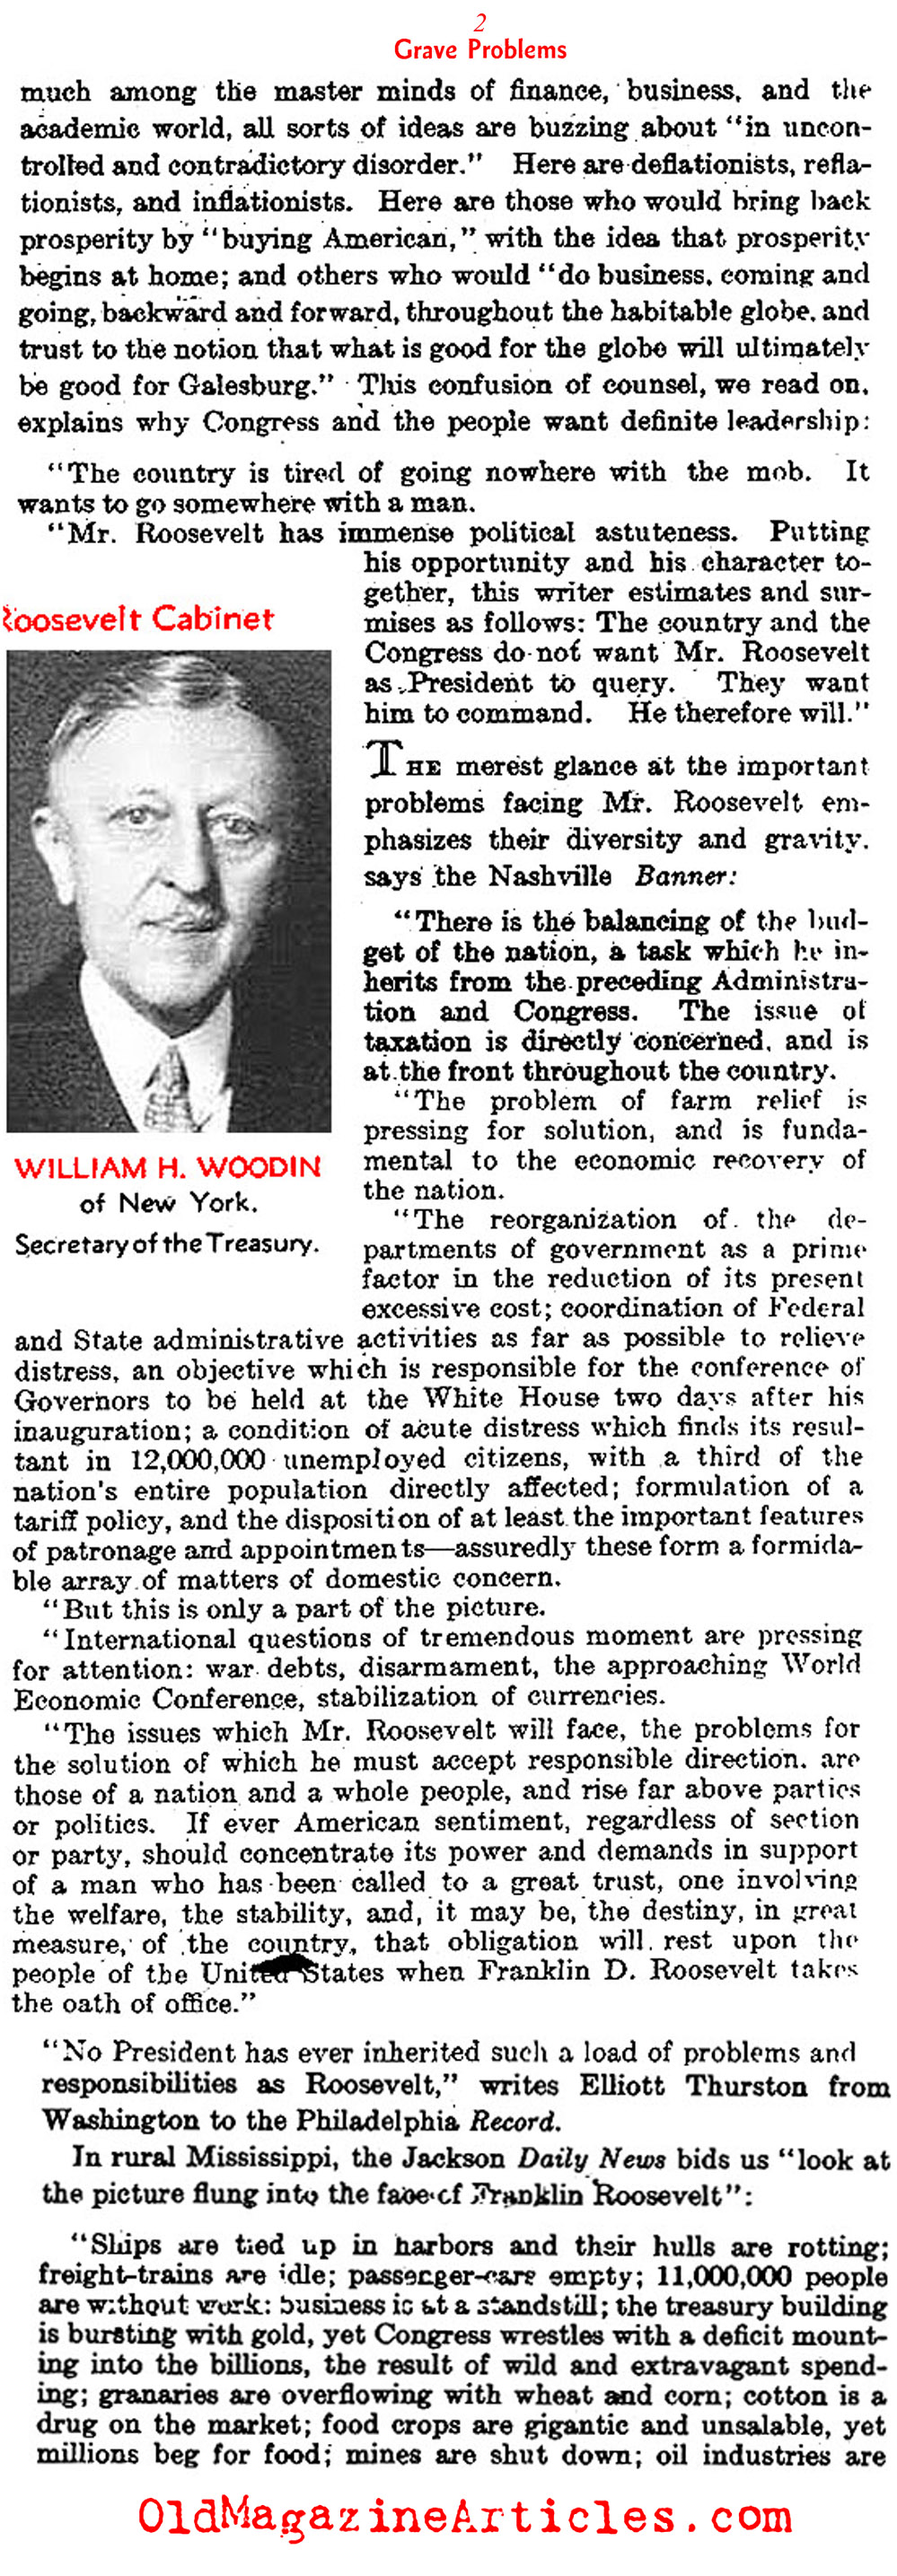 Roosevelt Takes Charge... (The Literary Digest, 1933)